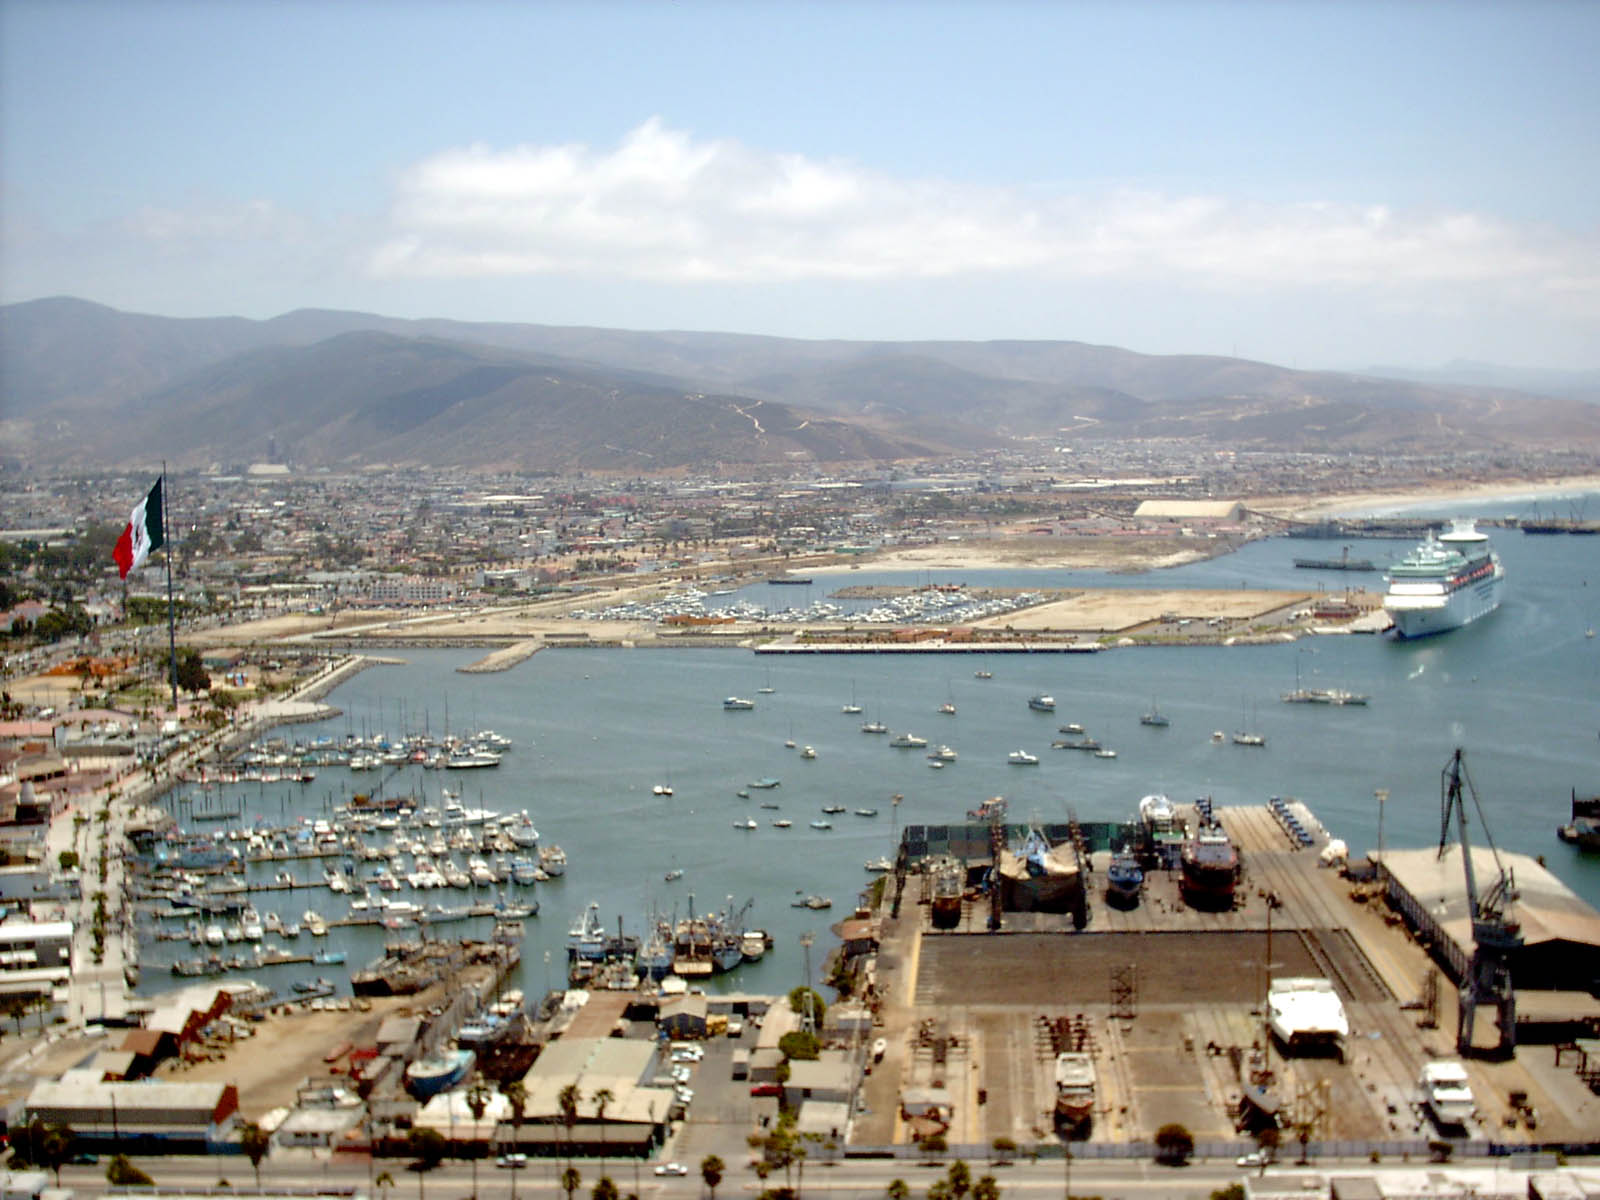 Port of Ensenada, Baja California, Mexico